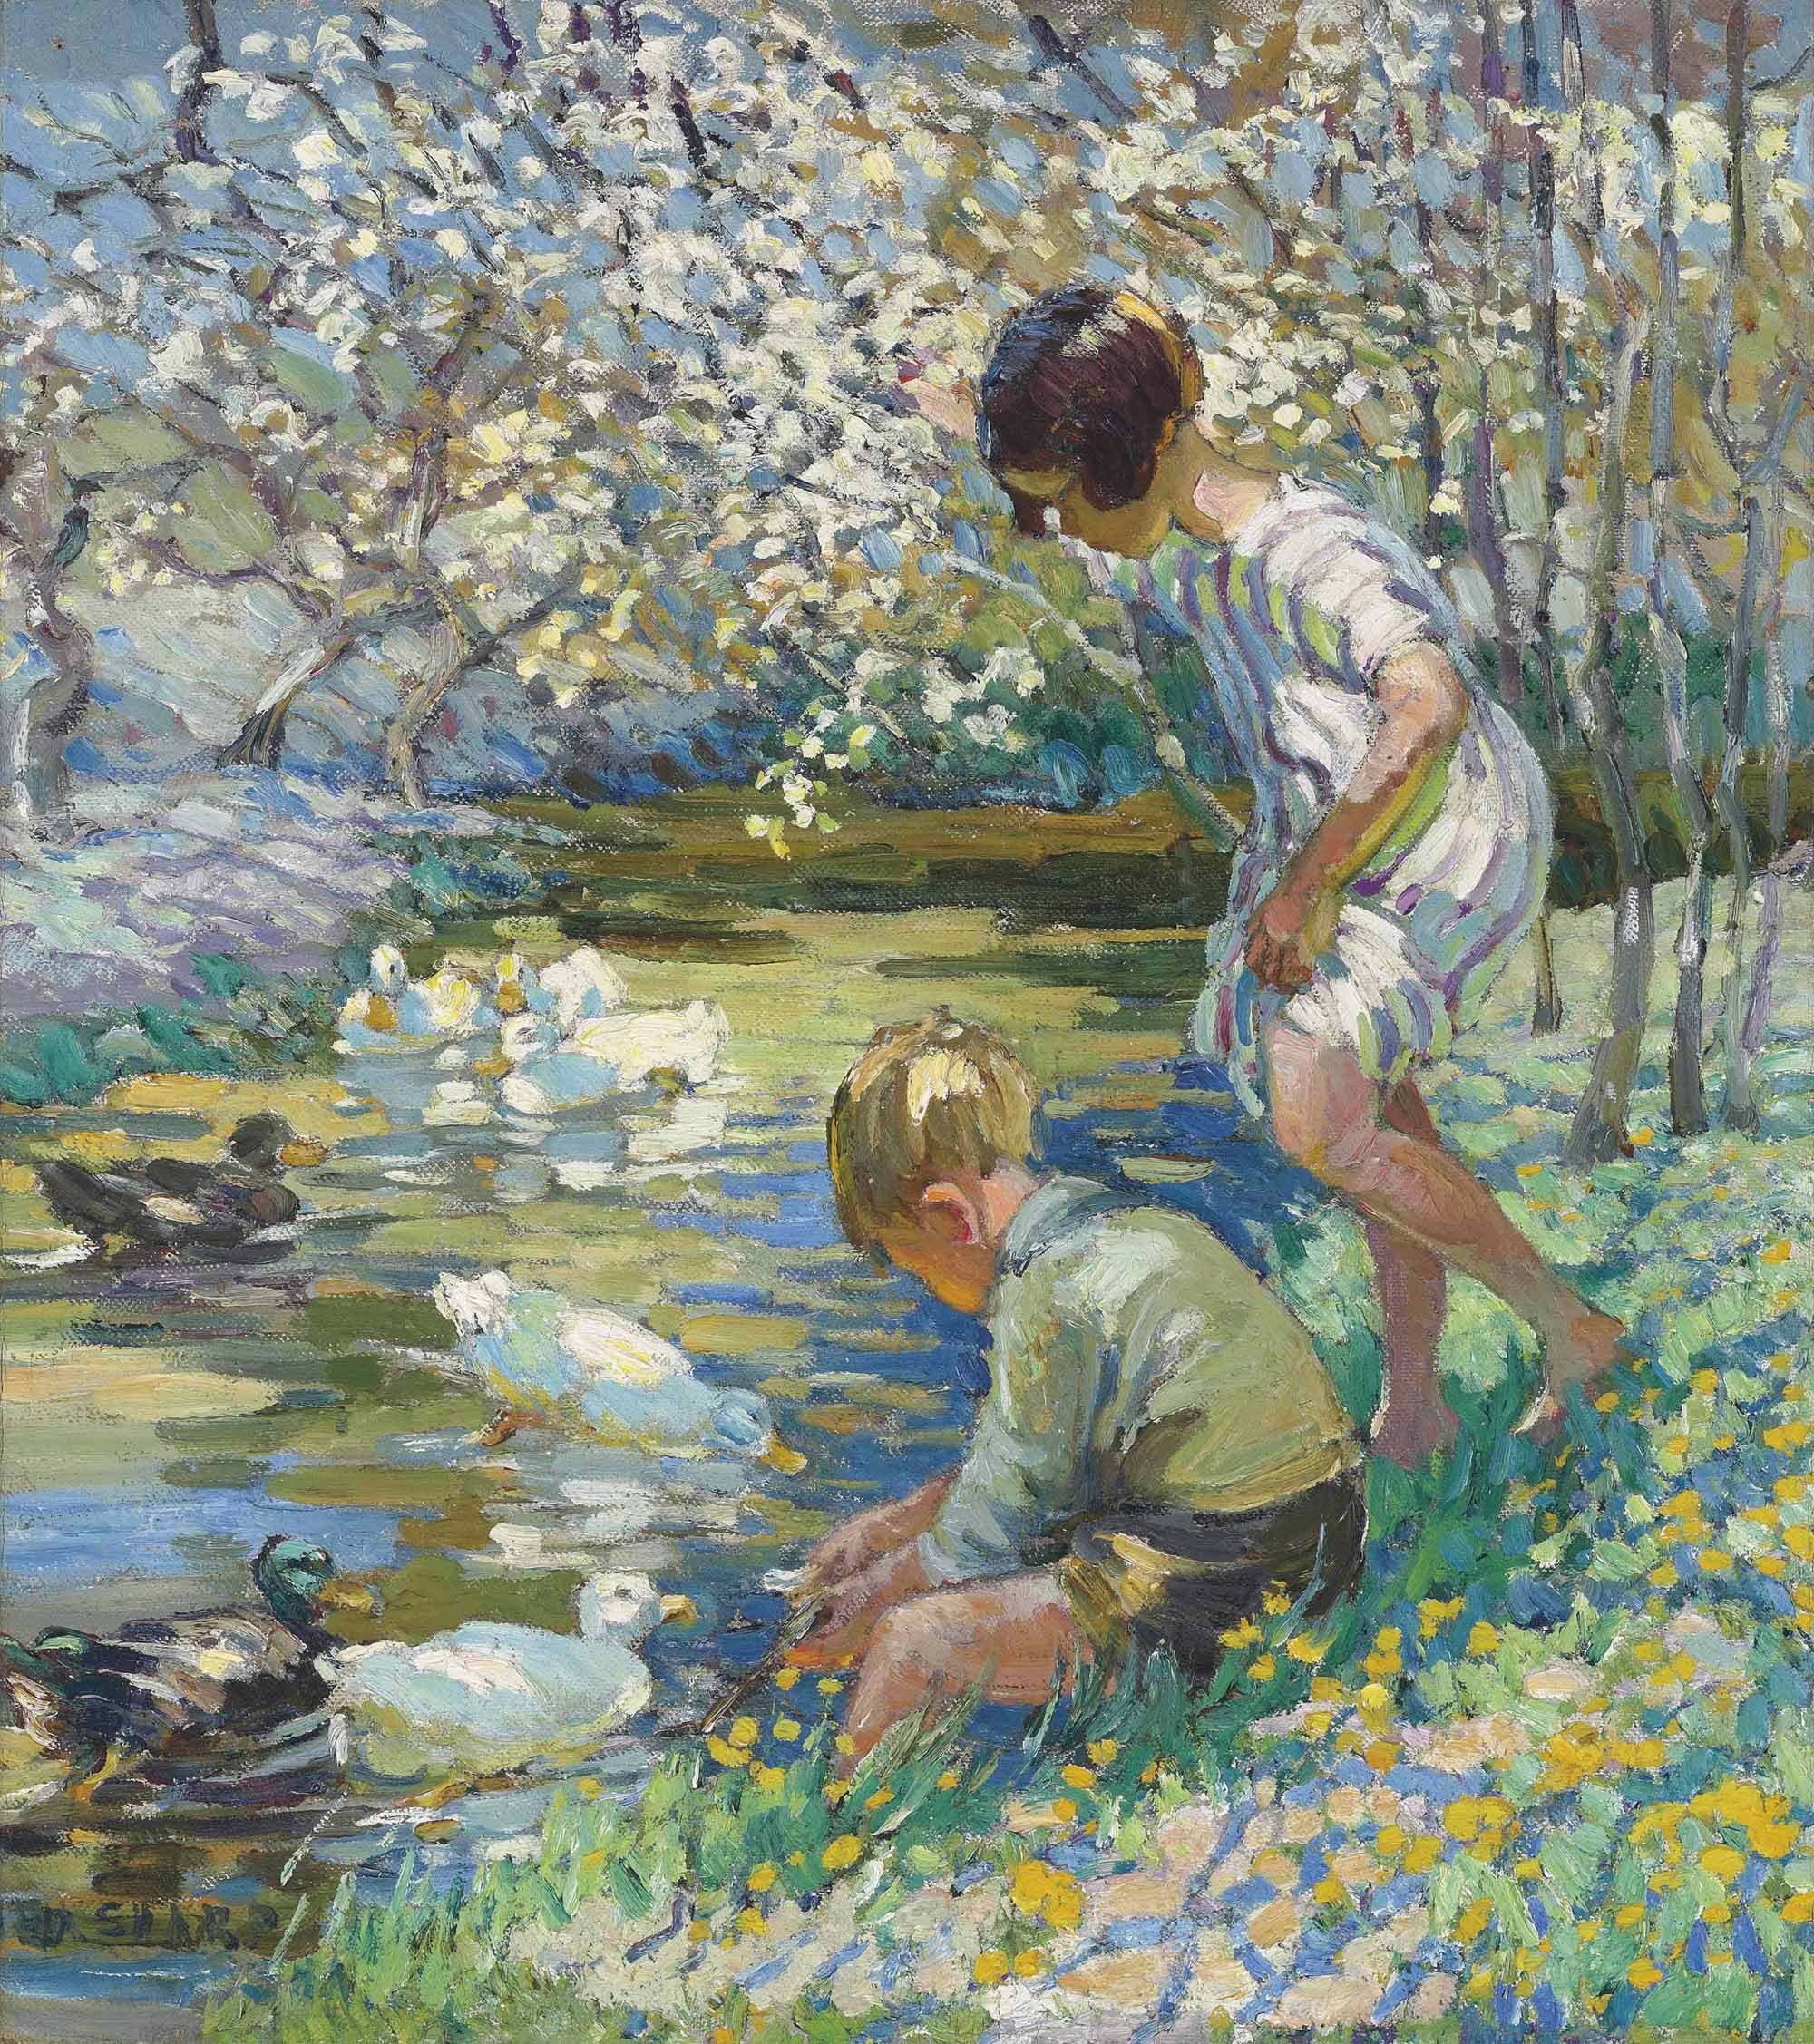 Children playing beside a stream